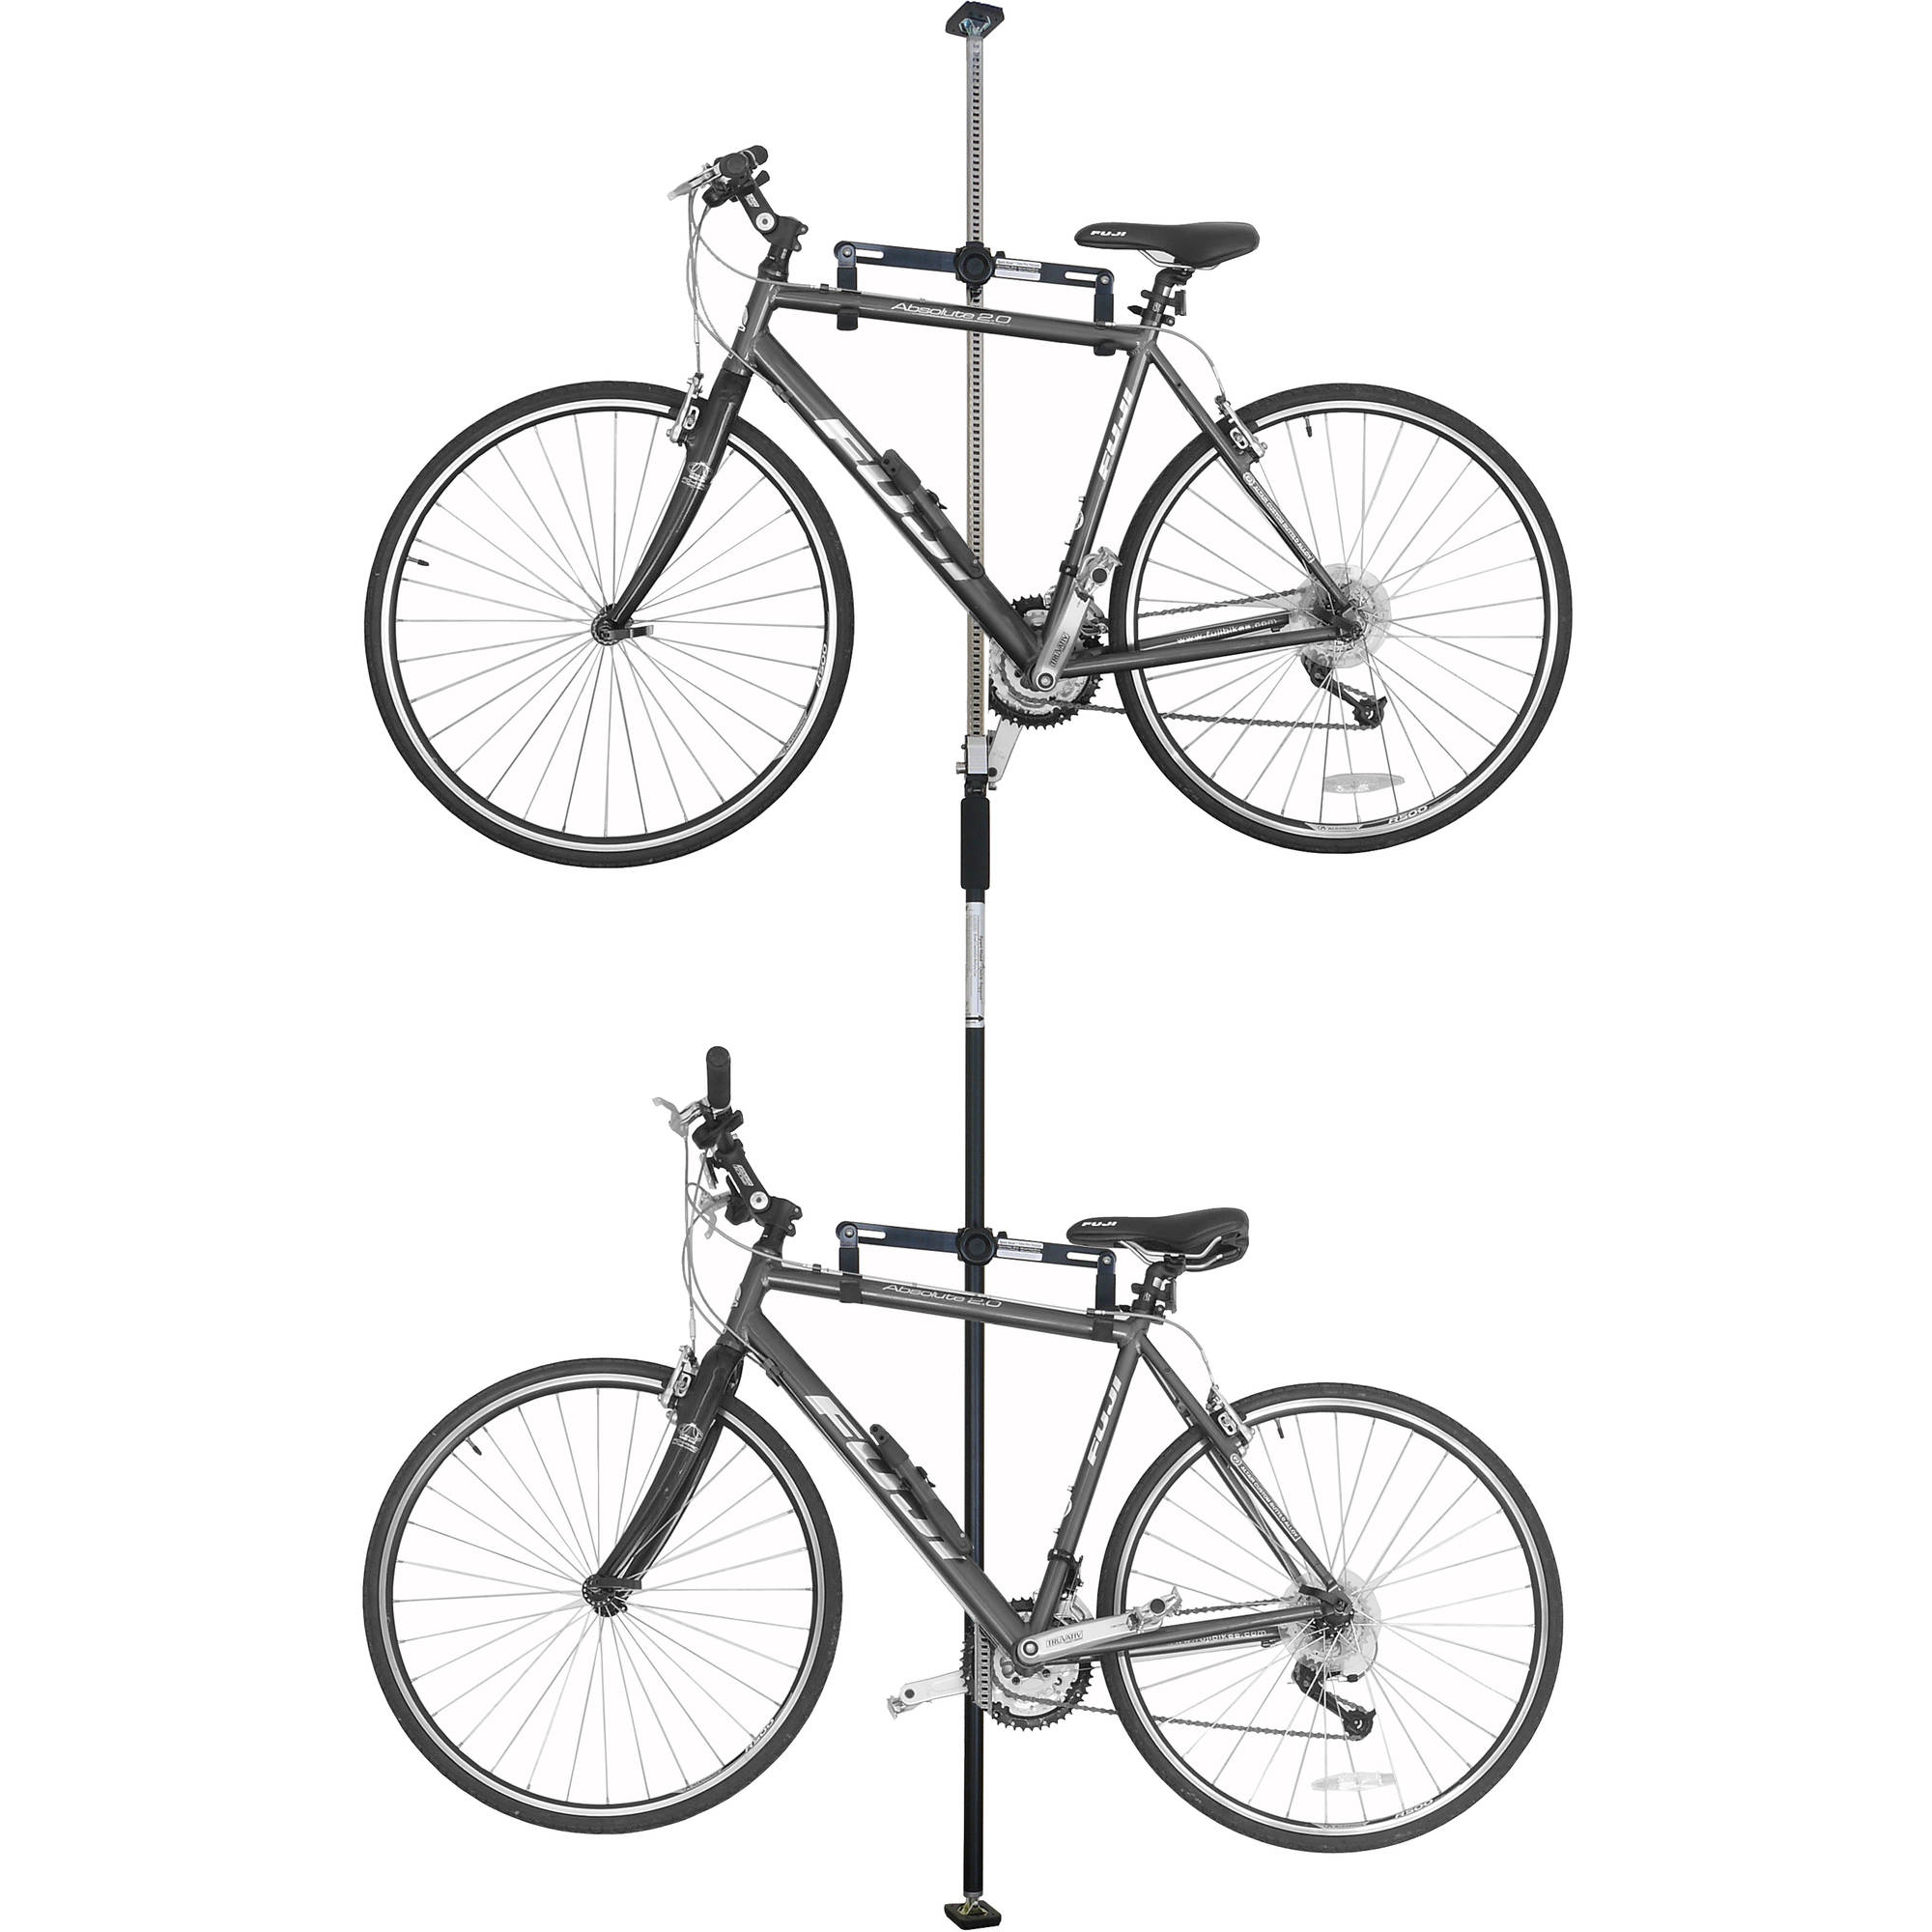 Sparehand Q-Rack Freestanding Adjustable 2-Bike Storage Rack for All Frame Types Stoneman Sports, DBR-9161-BK, Black